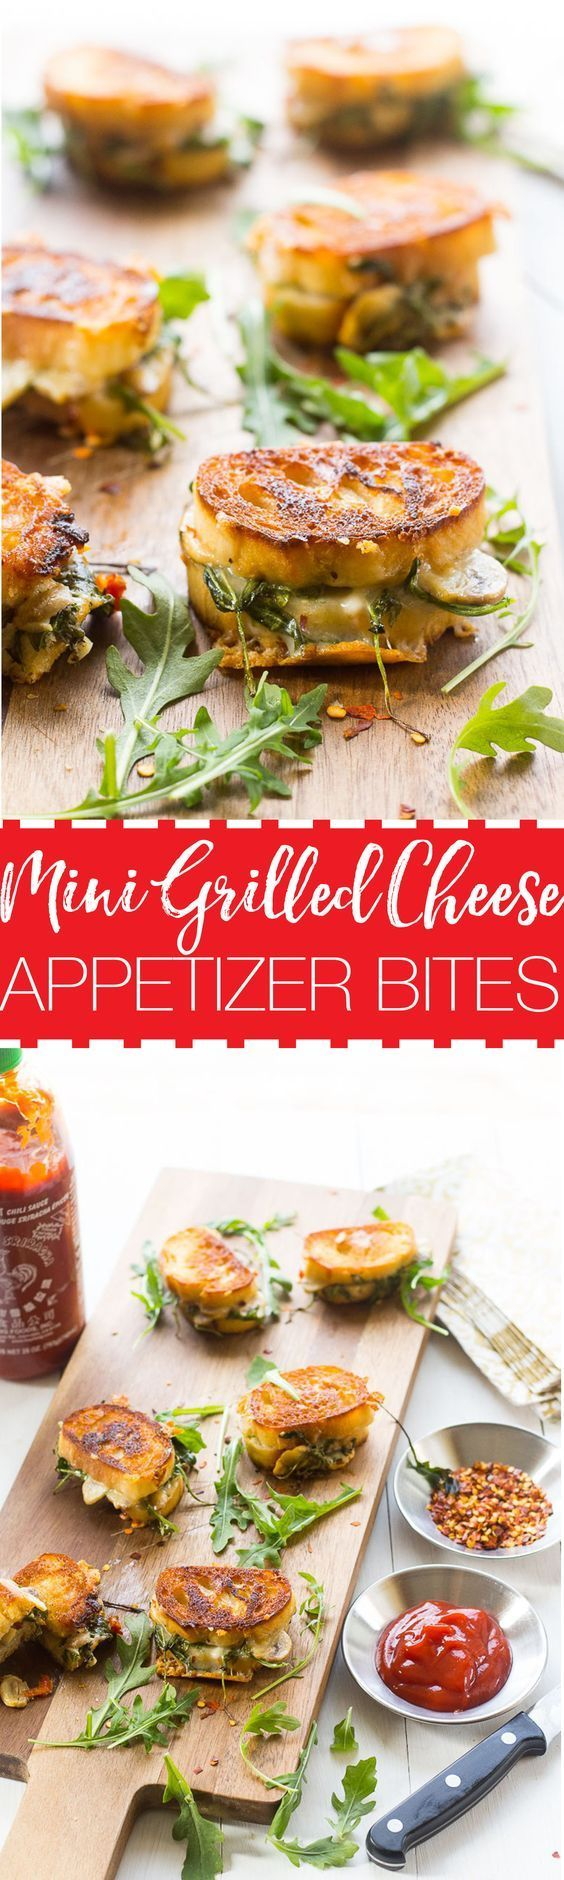 Mini Grilled Cheese Sandwich Appetizers made with aged cheddar, sundried tomatoes, mushrooms and arugula